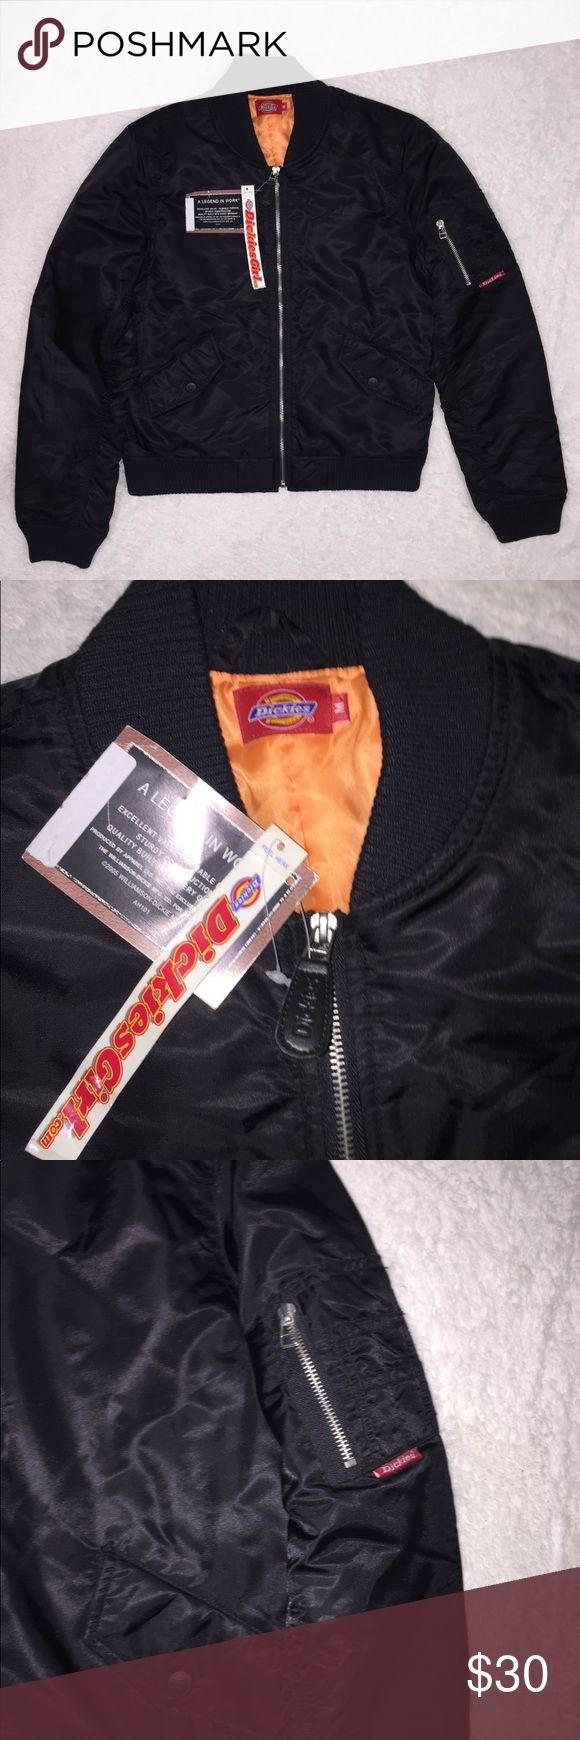 Dickies Black Jacket Black jacket with small zipper pocket on arm and zip front Dickies Jackets & Coats